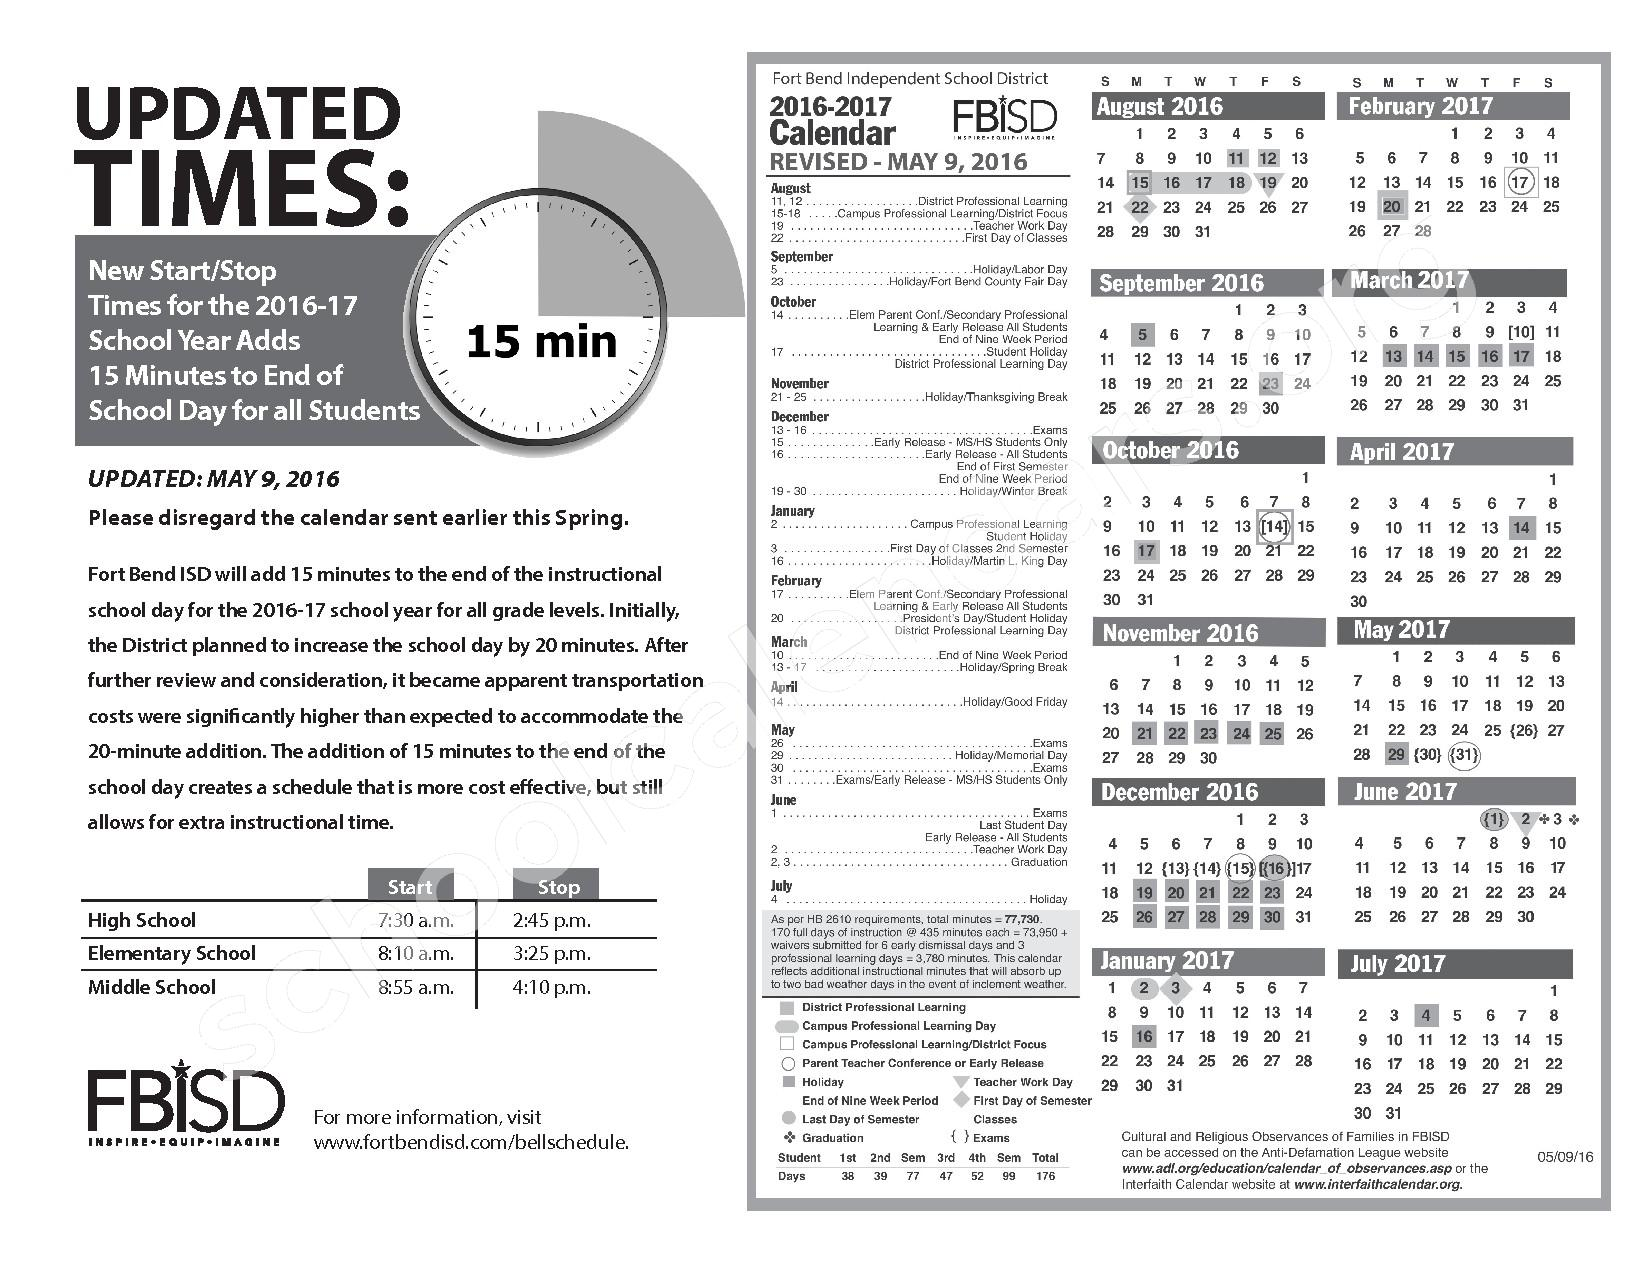 2016 - 2017 FBISD District Calendar and New Bell Schedule – Fort Bend Independent School District – page 1